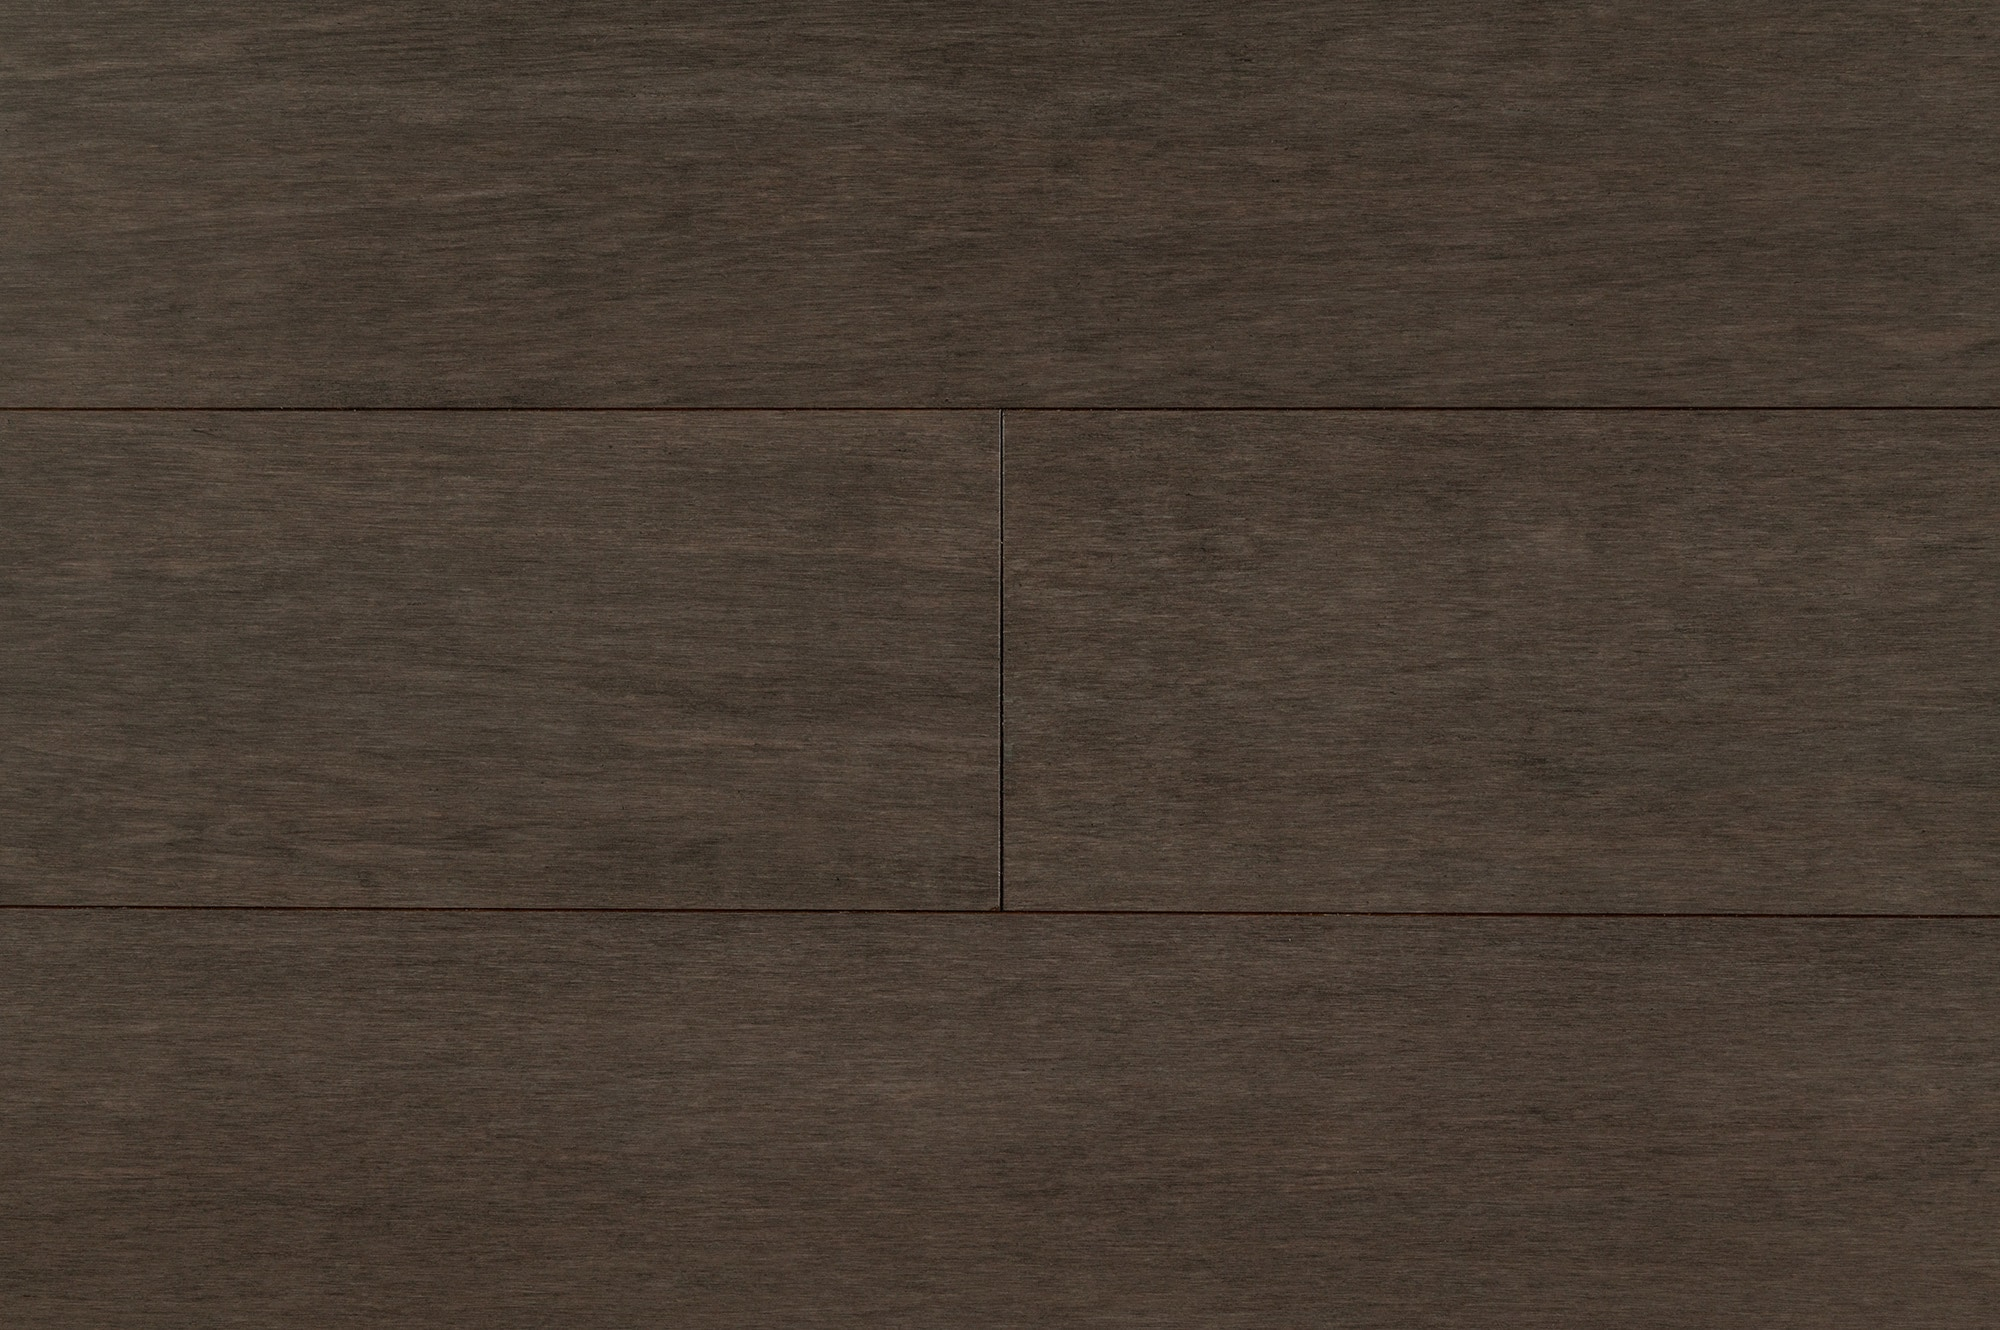 Yanchi Stained Lock Solid Strand Woven Bamboo Flooring